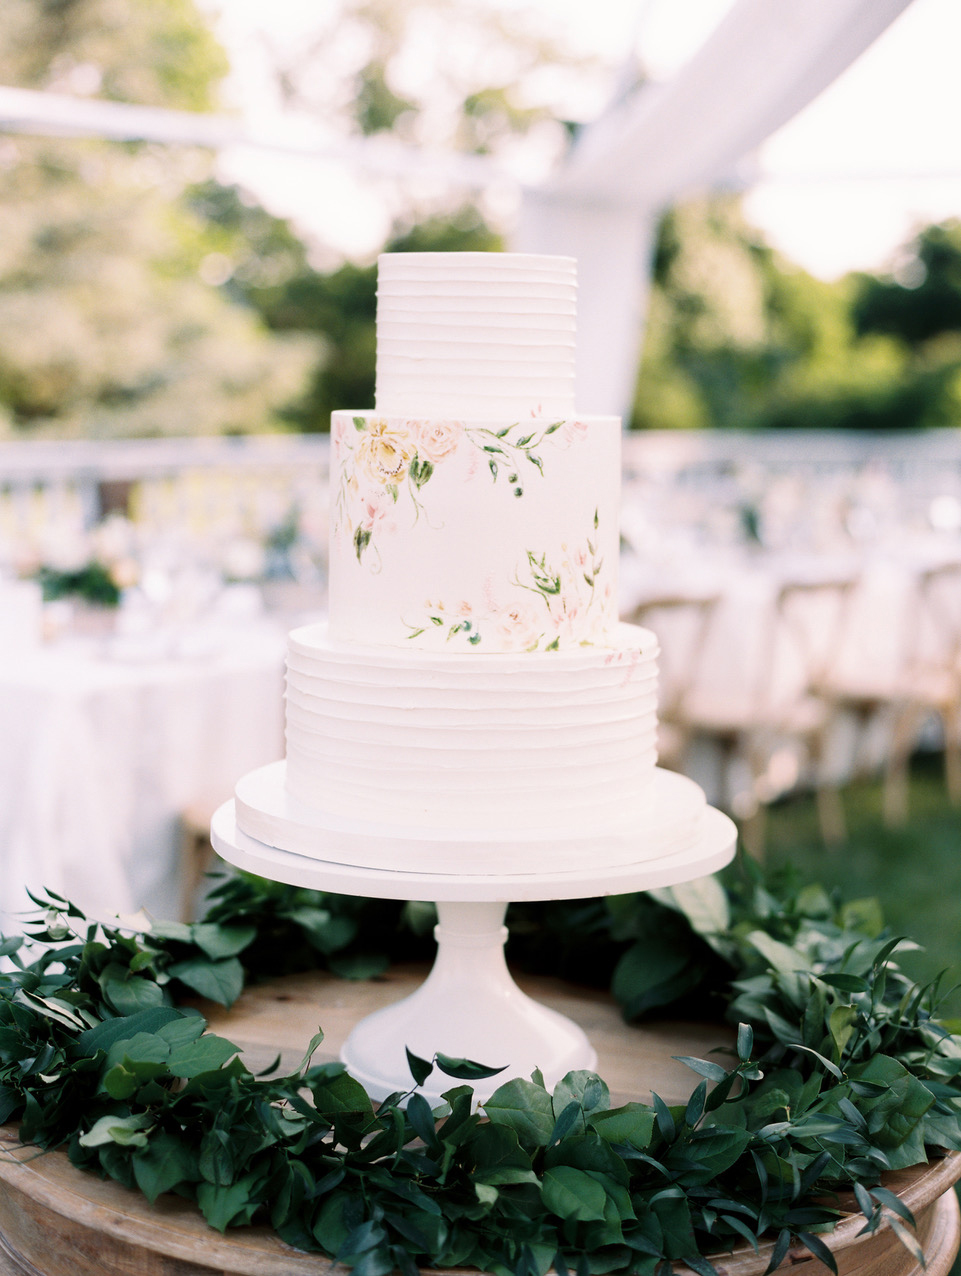 white wedding cake with patterned accent layer